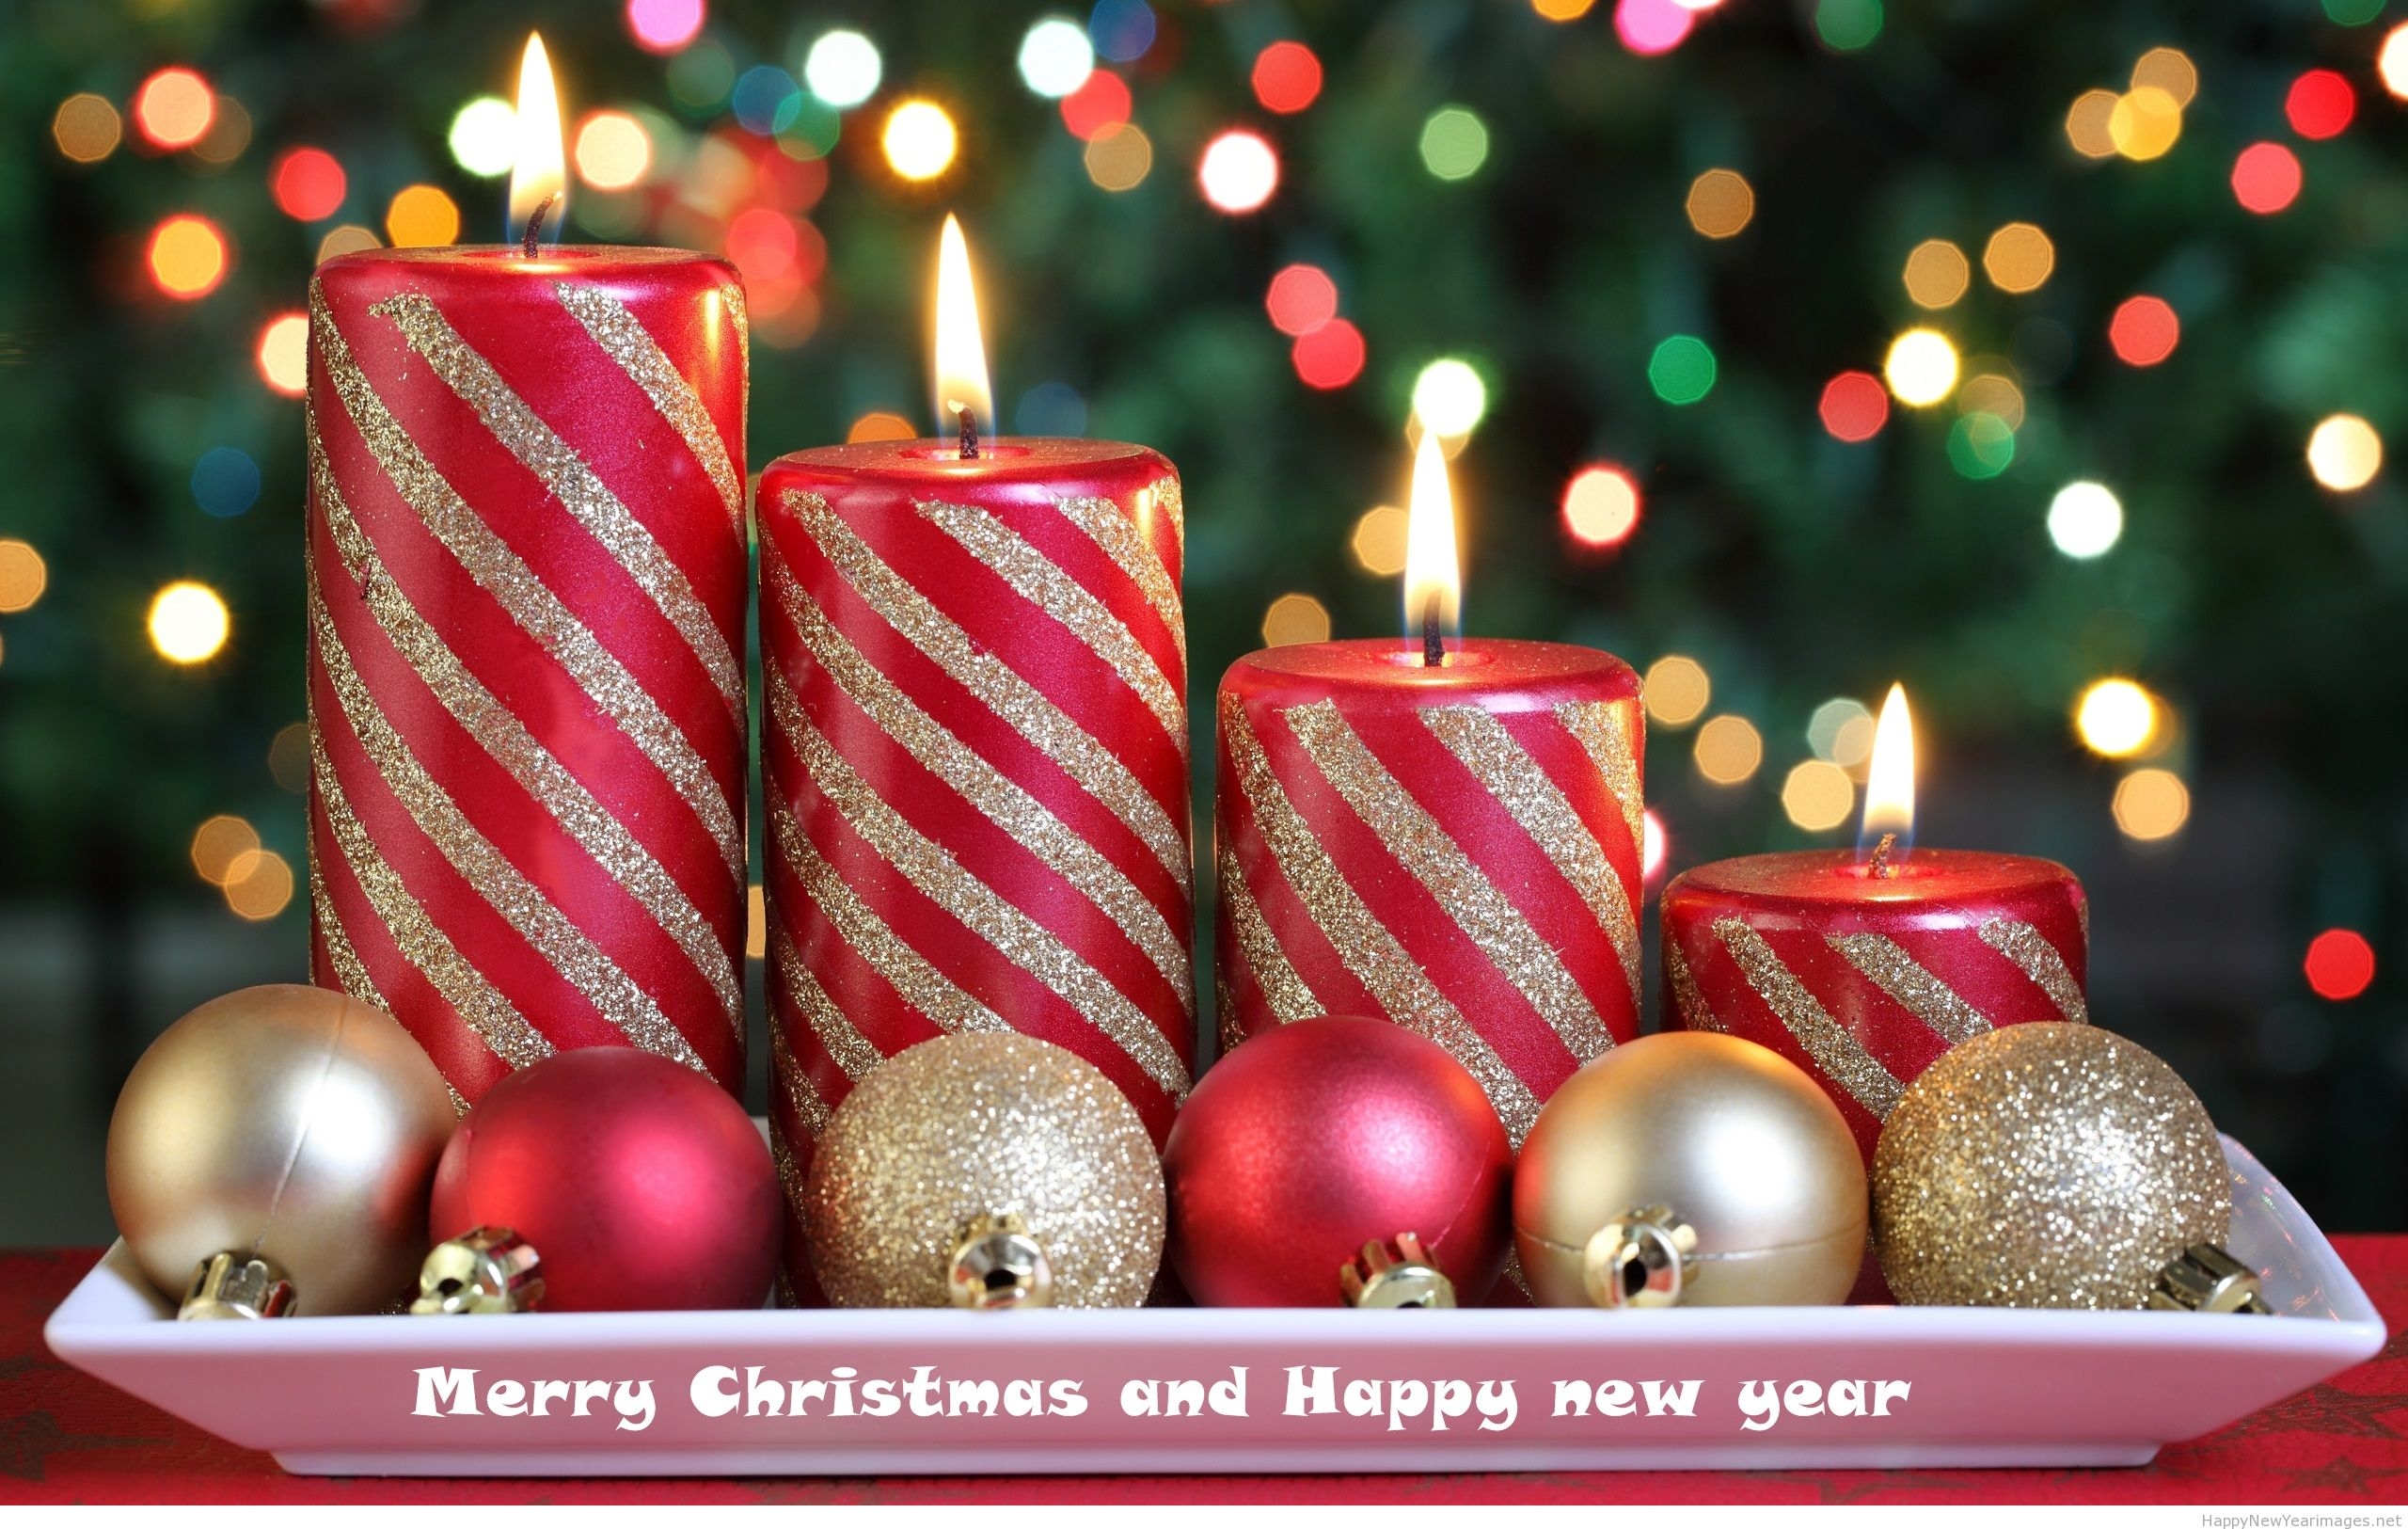 merry christmas happy new year greetings hd